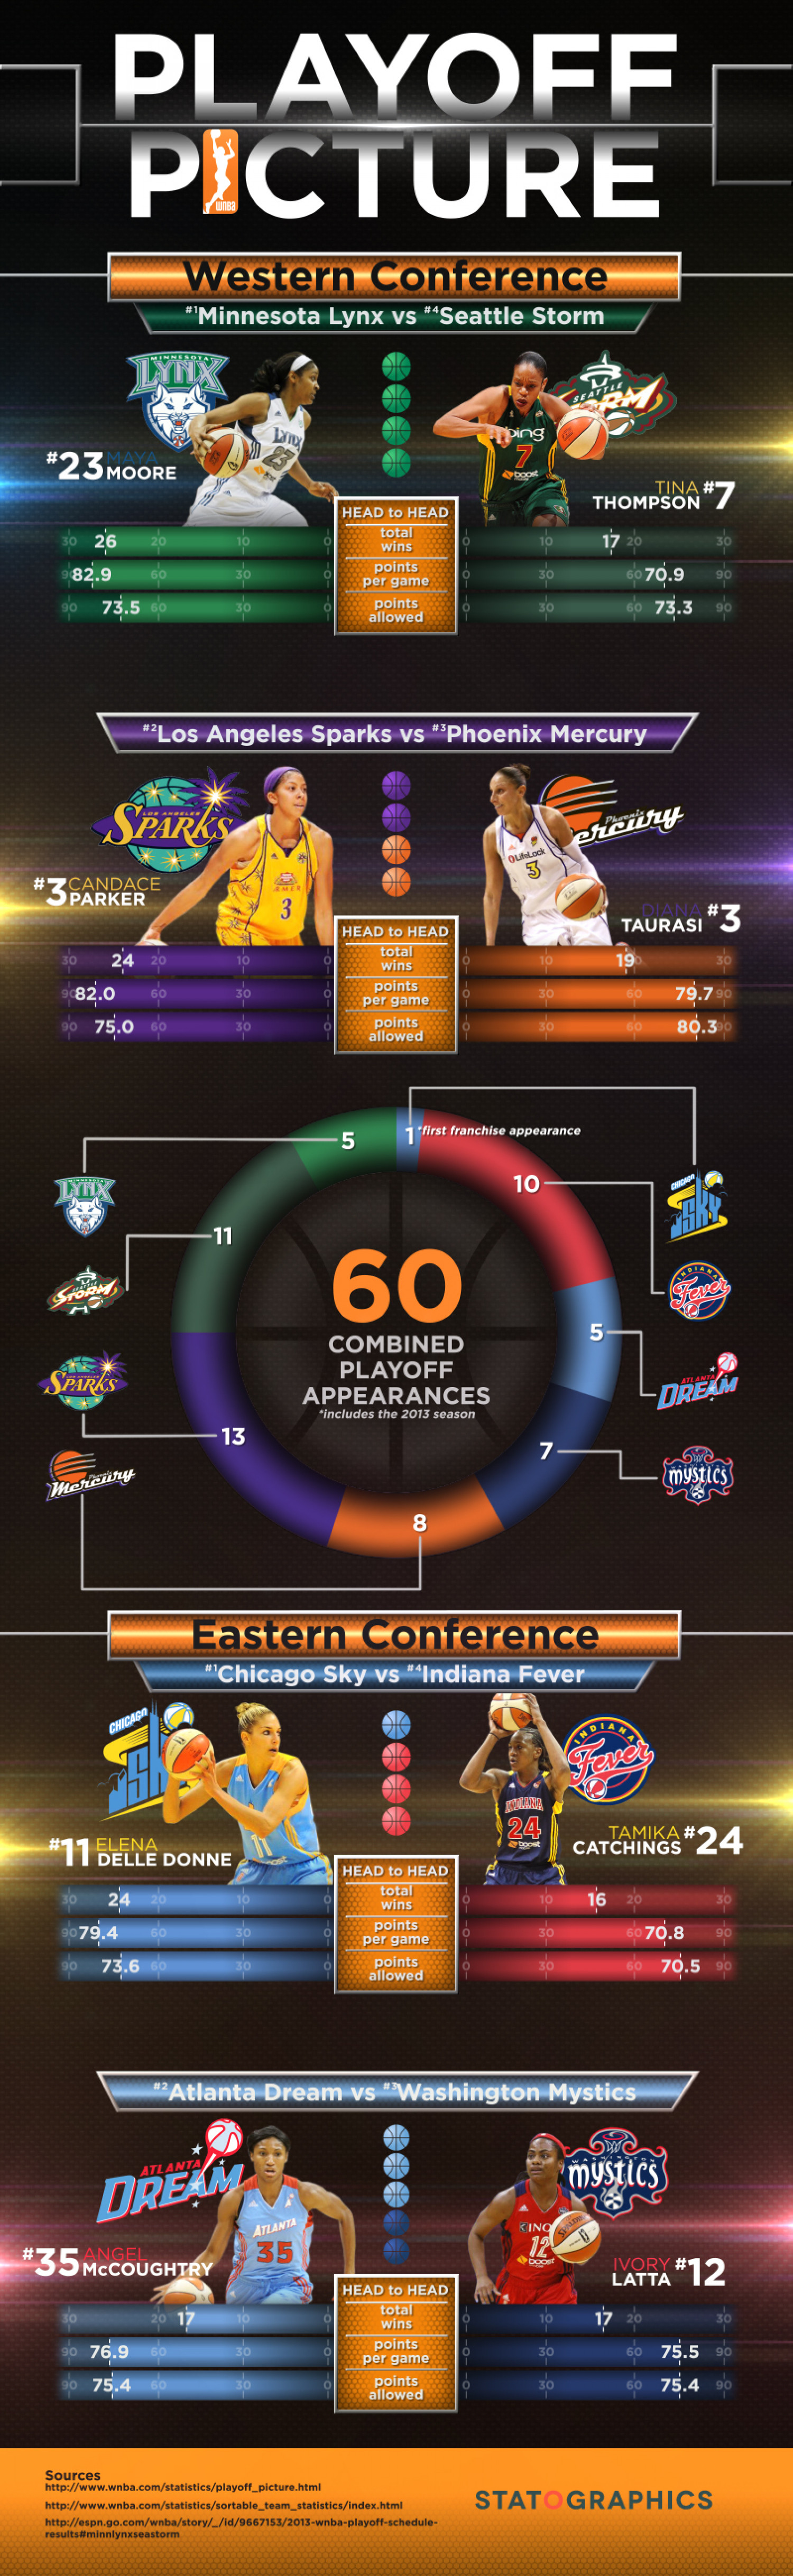 WNBA Playoff Picture Infographic